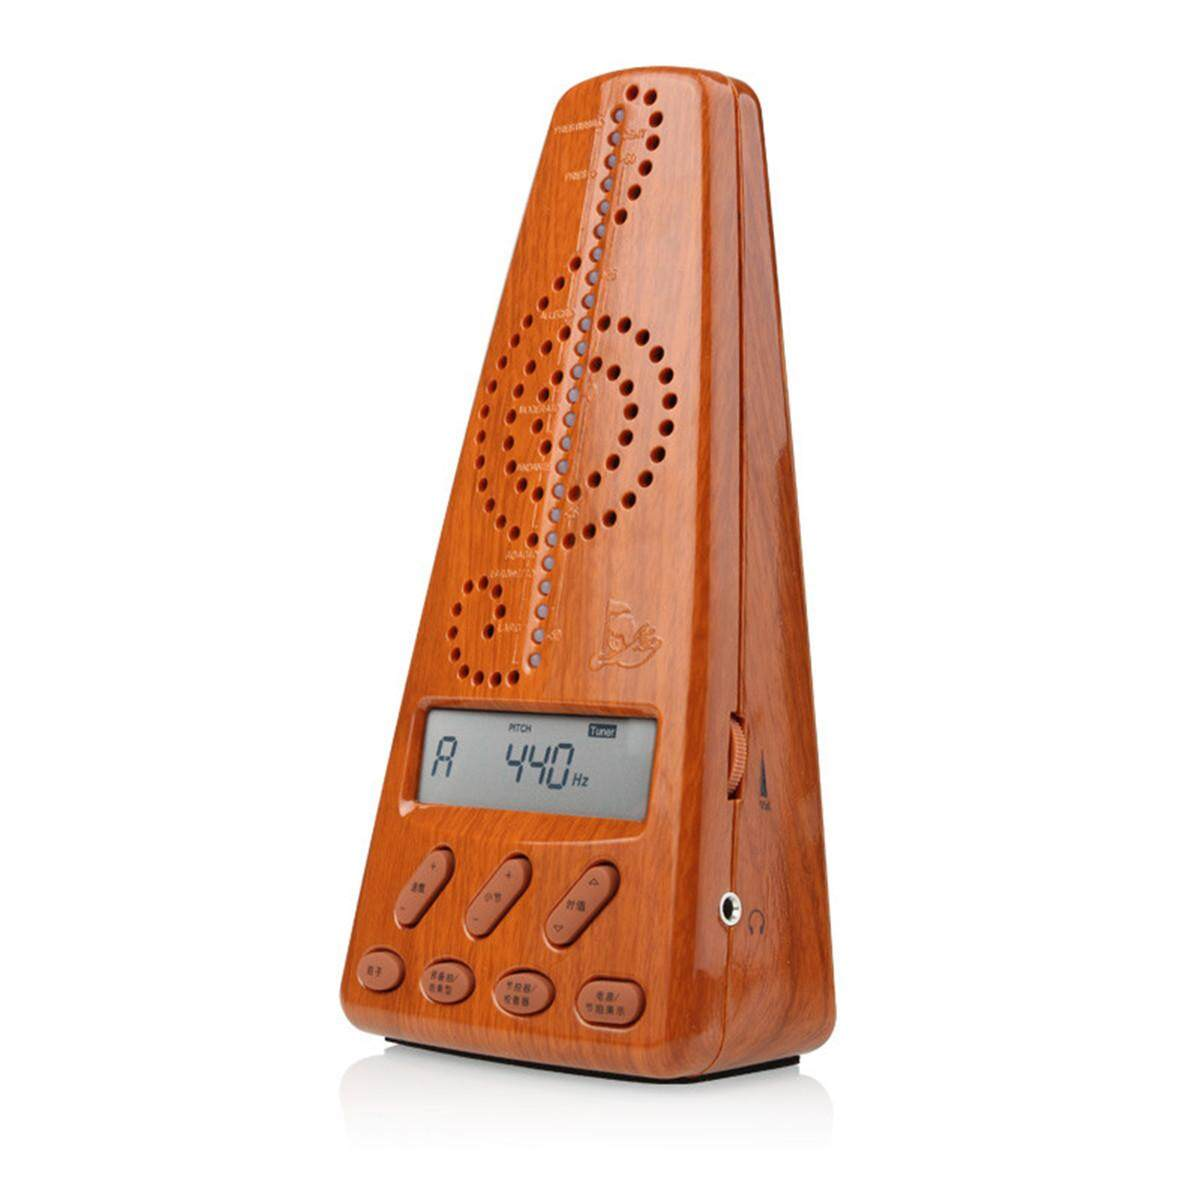 Colorful Wmt-220 Microcomputer Metronome 3 In 1 Metro-Tuner Color Ramdom A4 Tone - Intl By Autoleader.